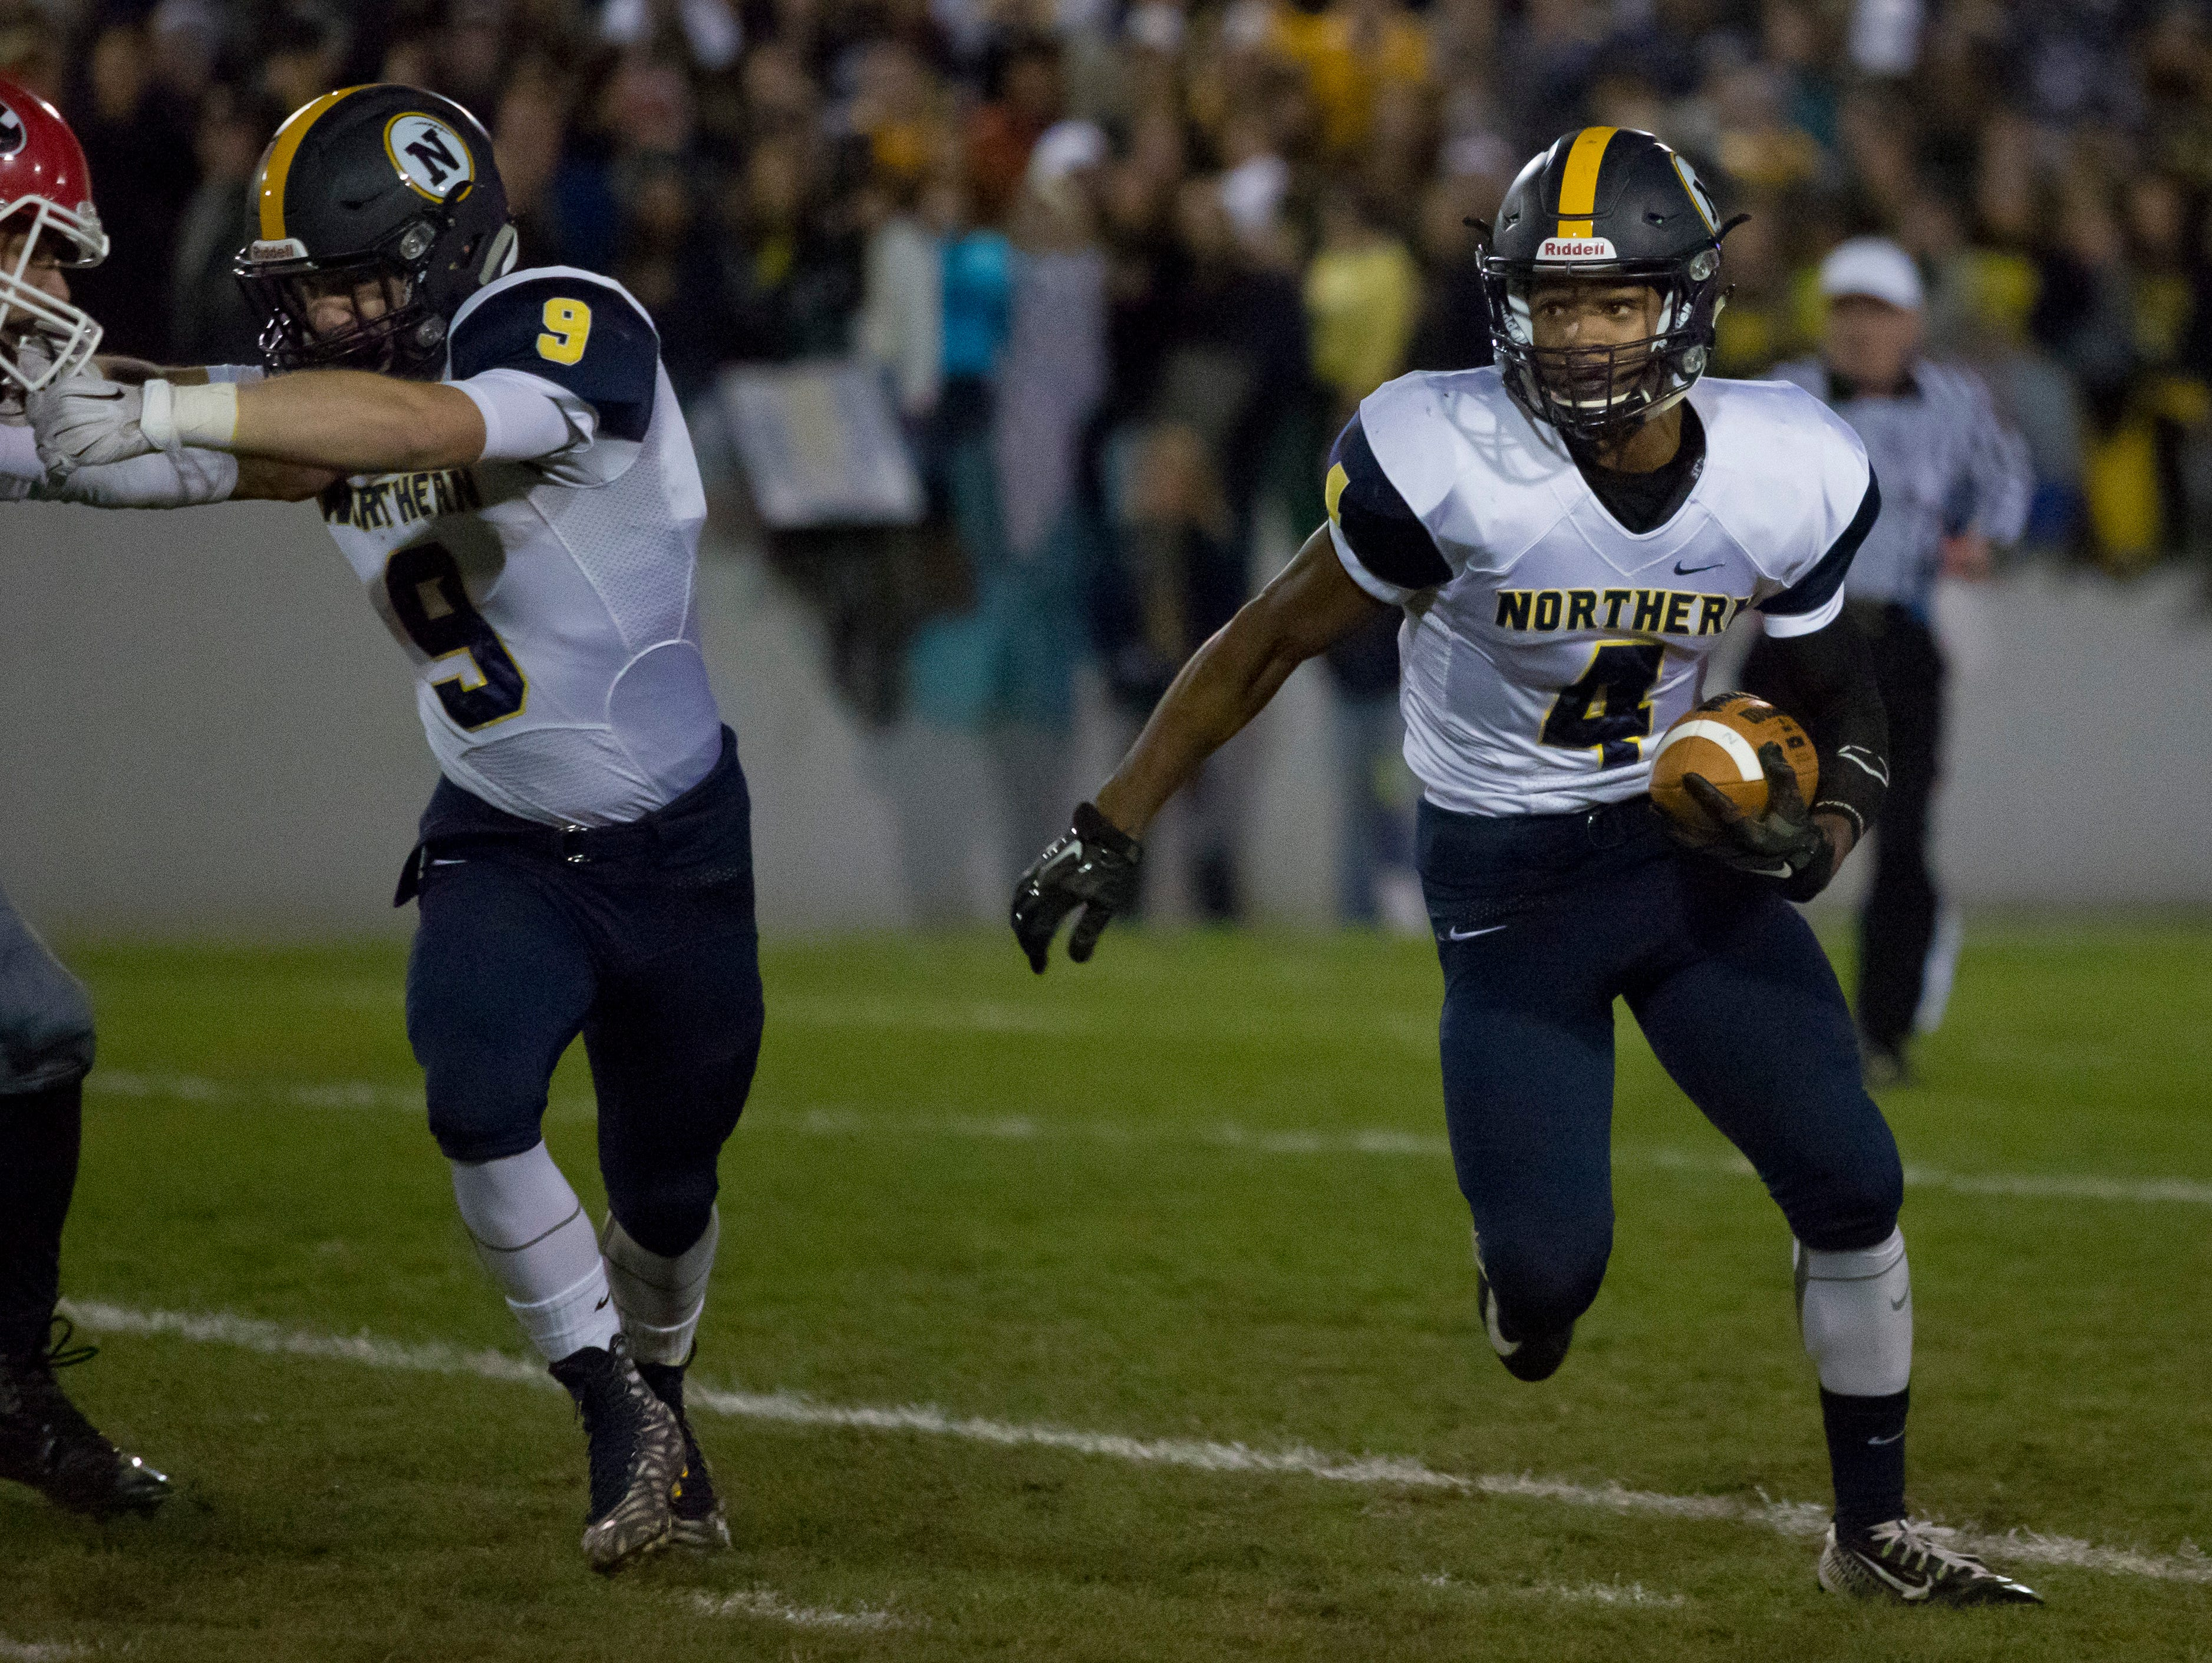 Port Huron Northern sophomore Steve Mason runs the ball as senior Adam Shier clears the way during the Crosstown Showdown Friday, October 23, 2015 at Memorial Stadium in Port Huron.